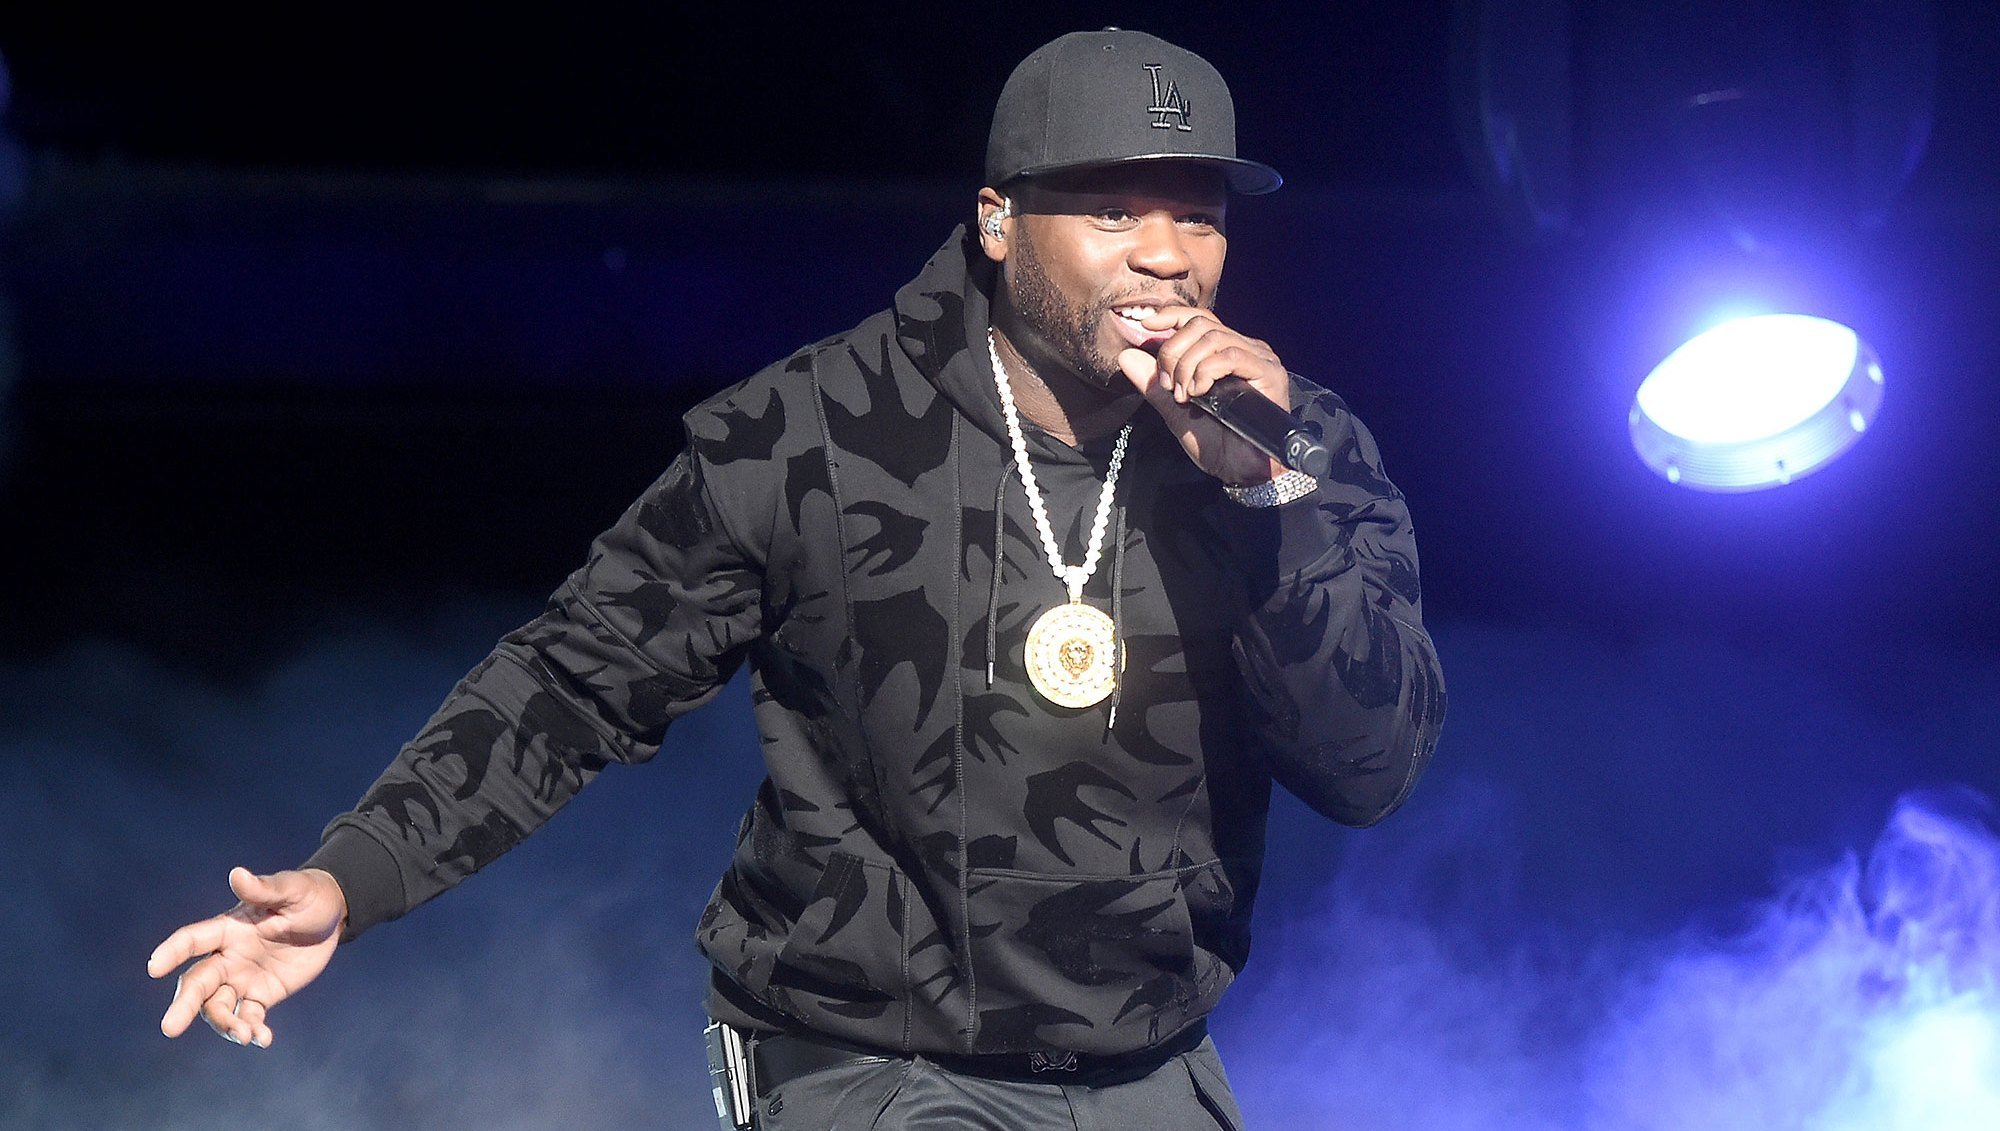 NYPD Investigating After Commander Allegedly Threatened 50 Cent, Telling Cops to 'Shoot Him on Sight'